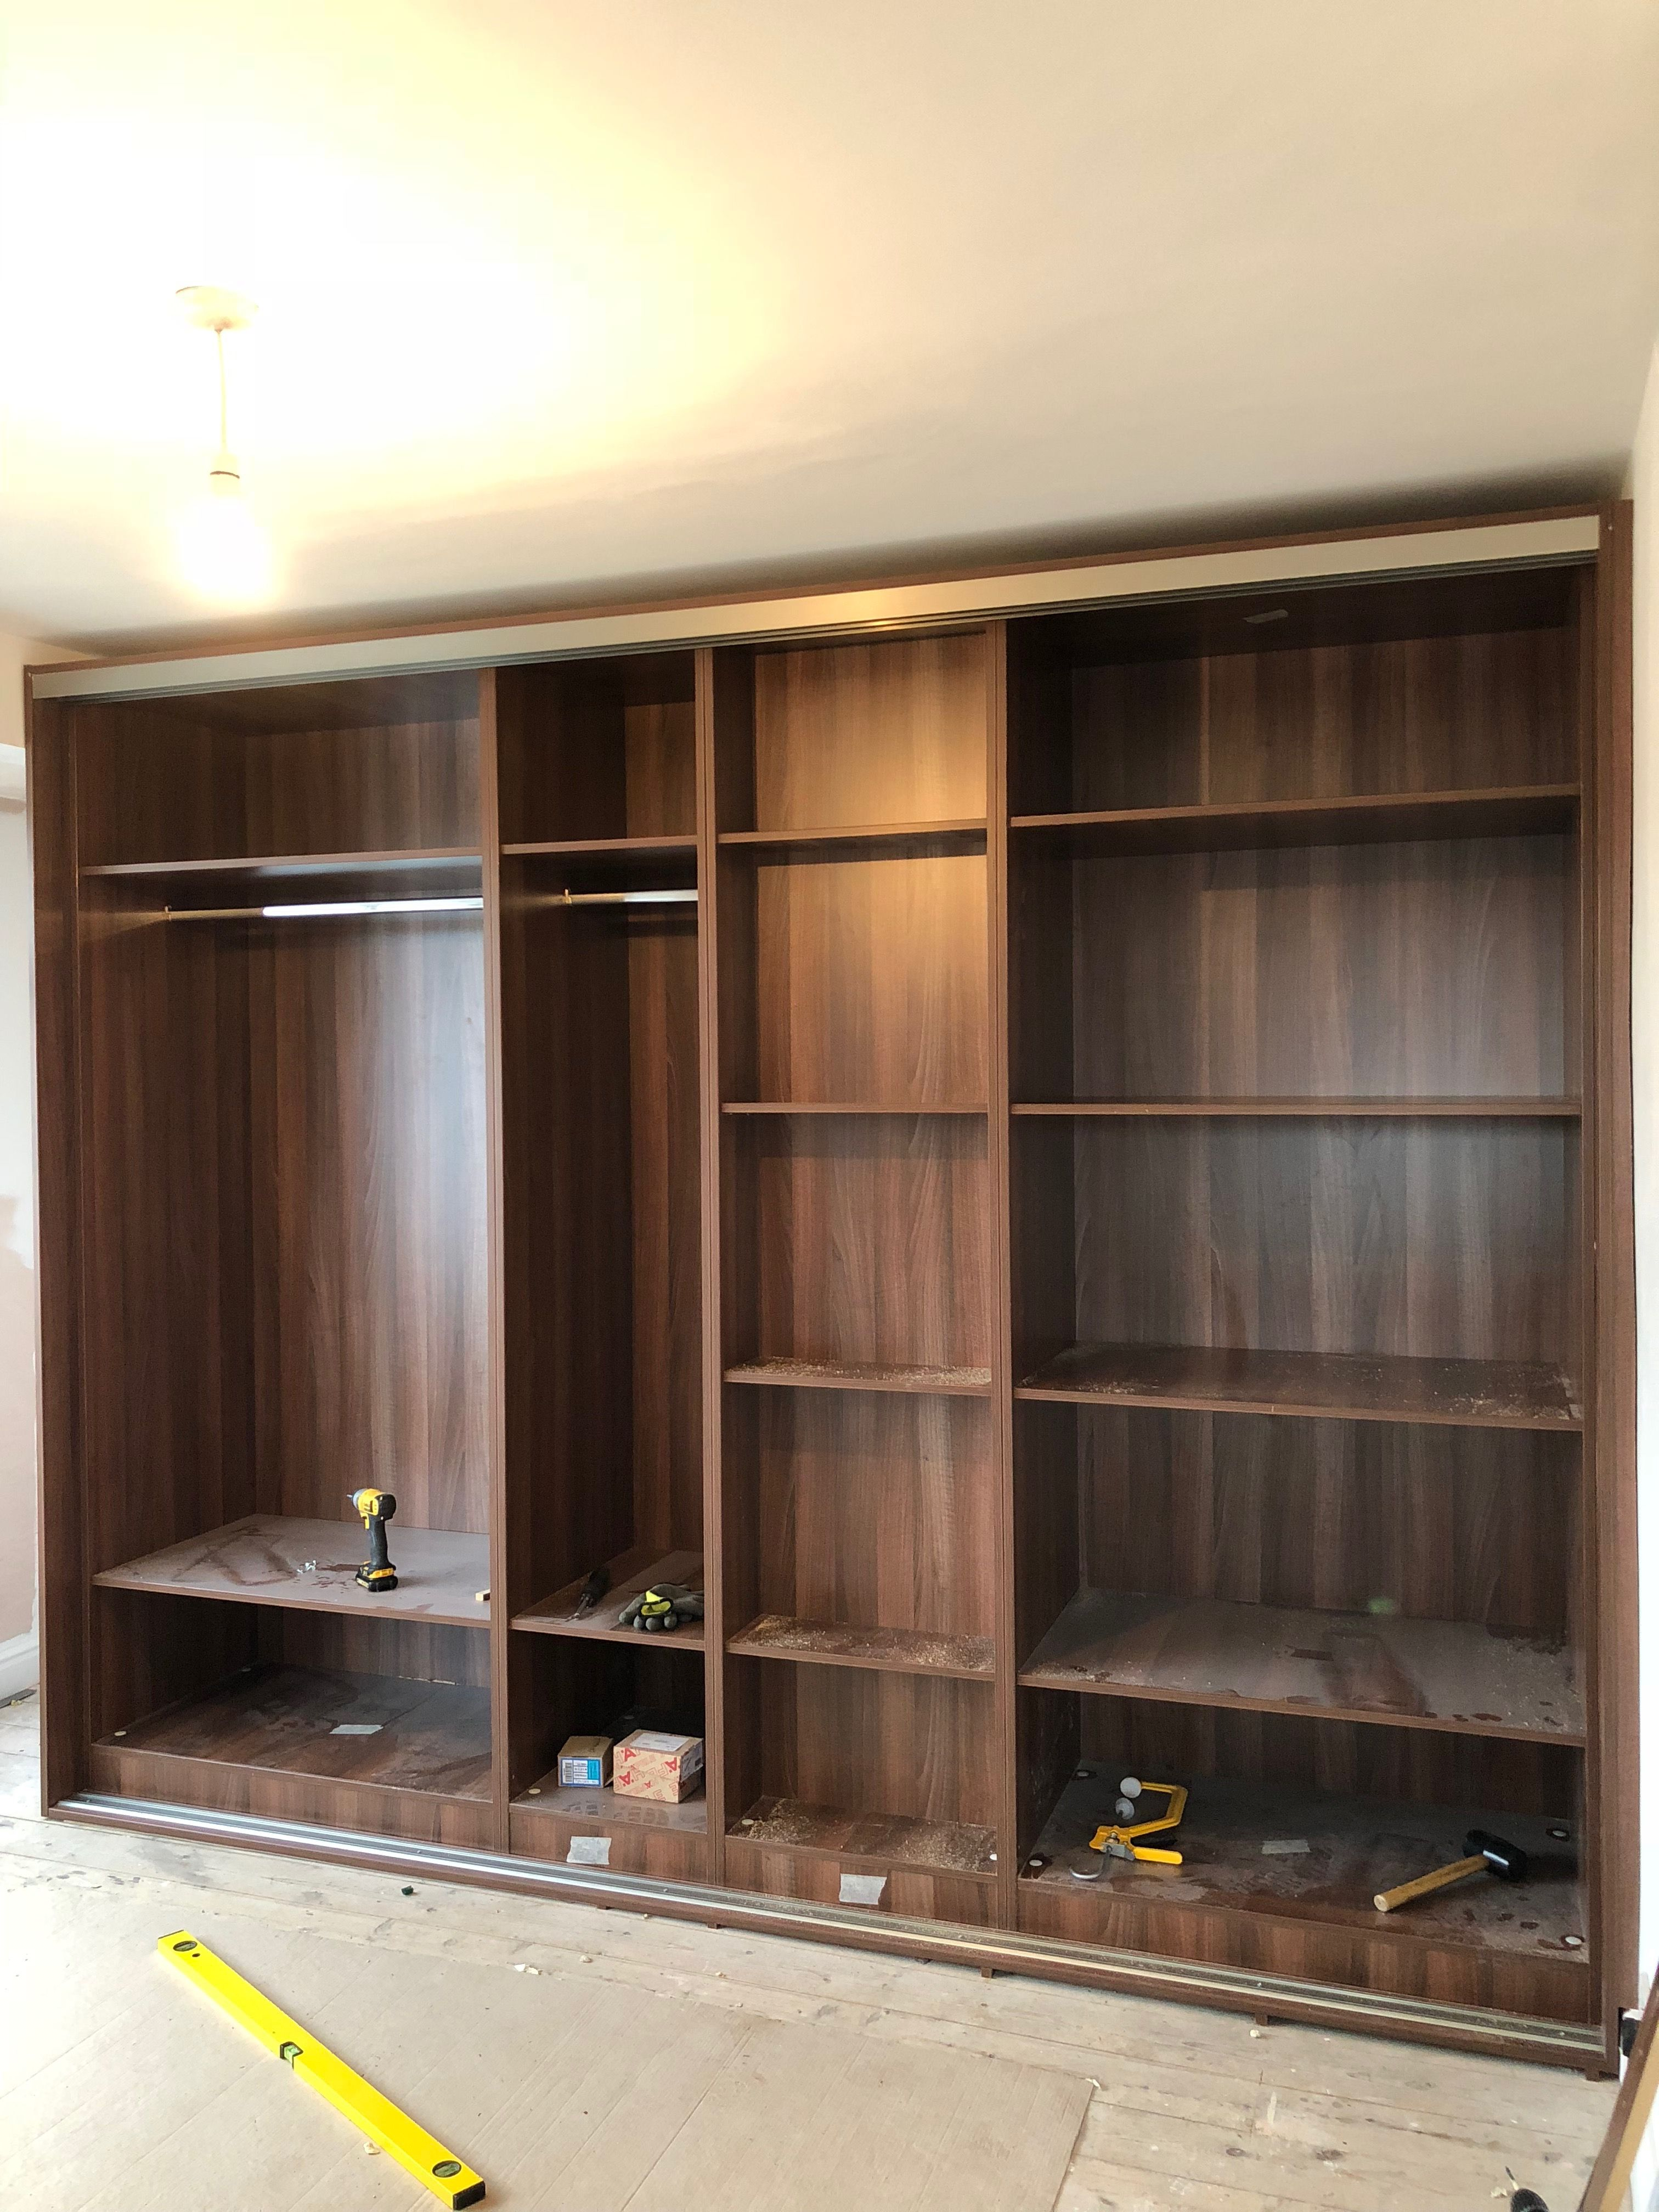 Pin by Sunil Bhardwaj on Bedroom, kitchen fitted wardrobes